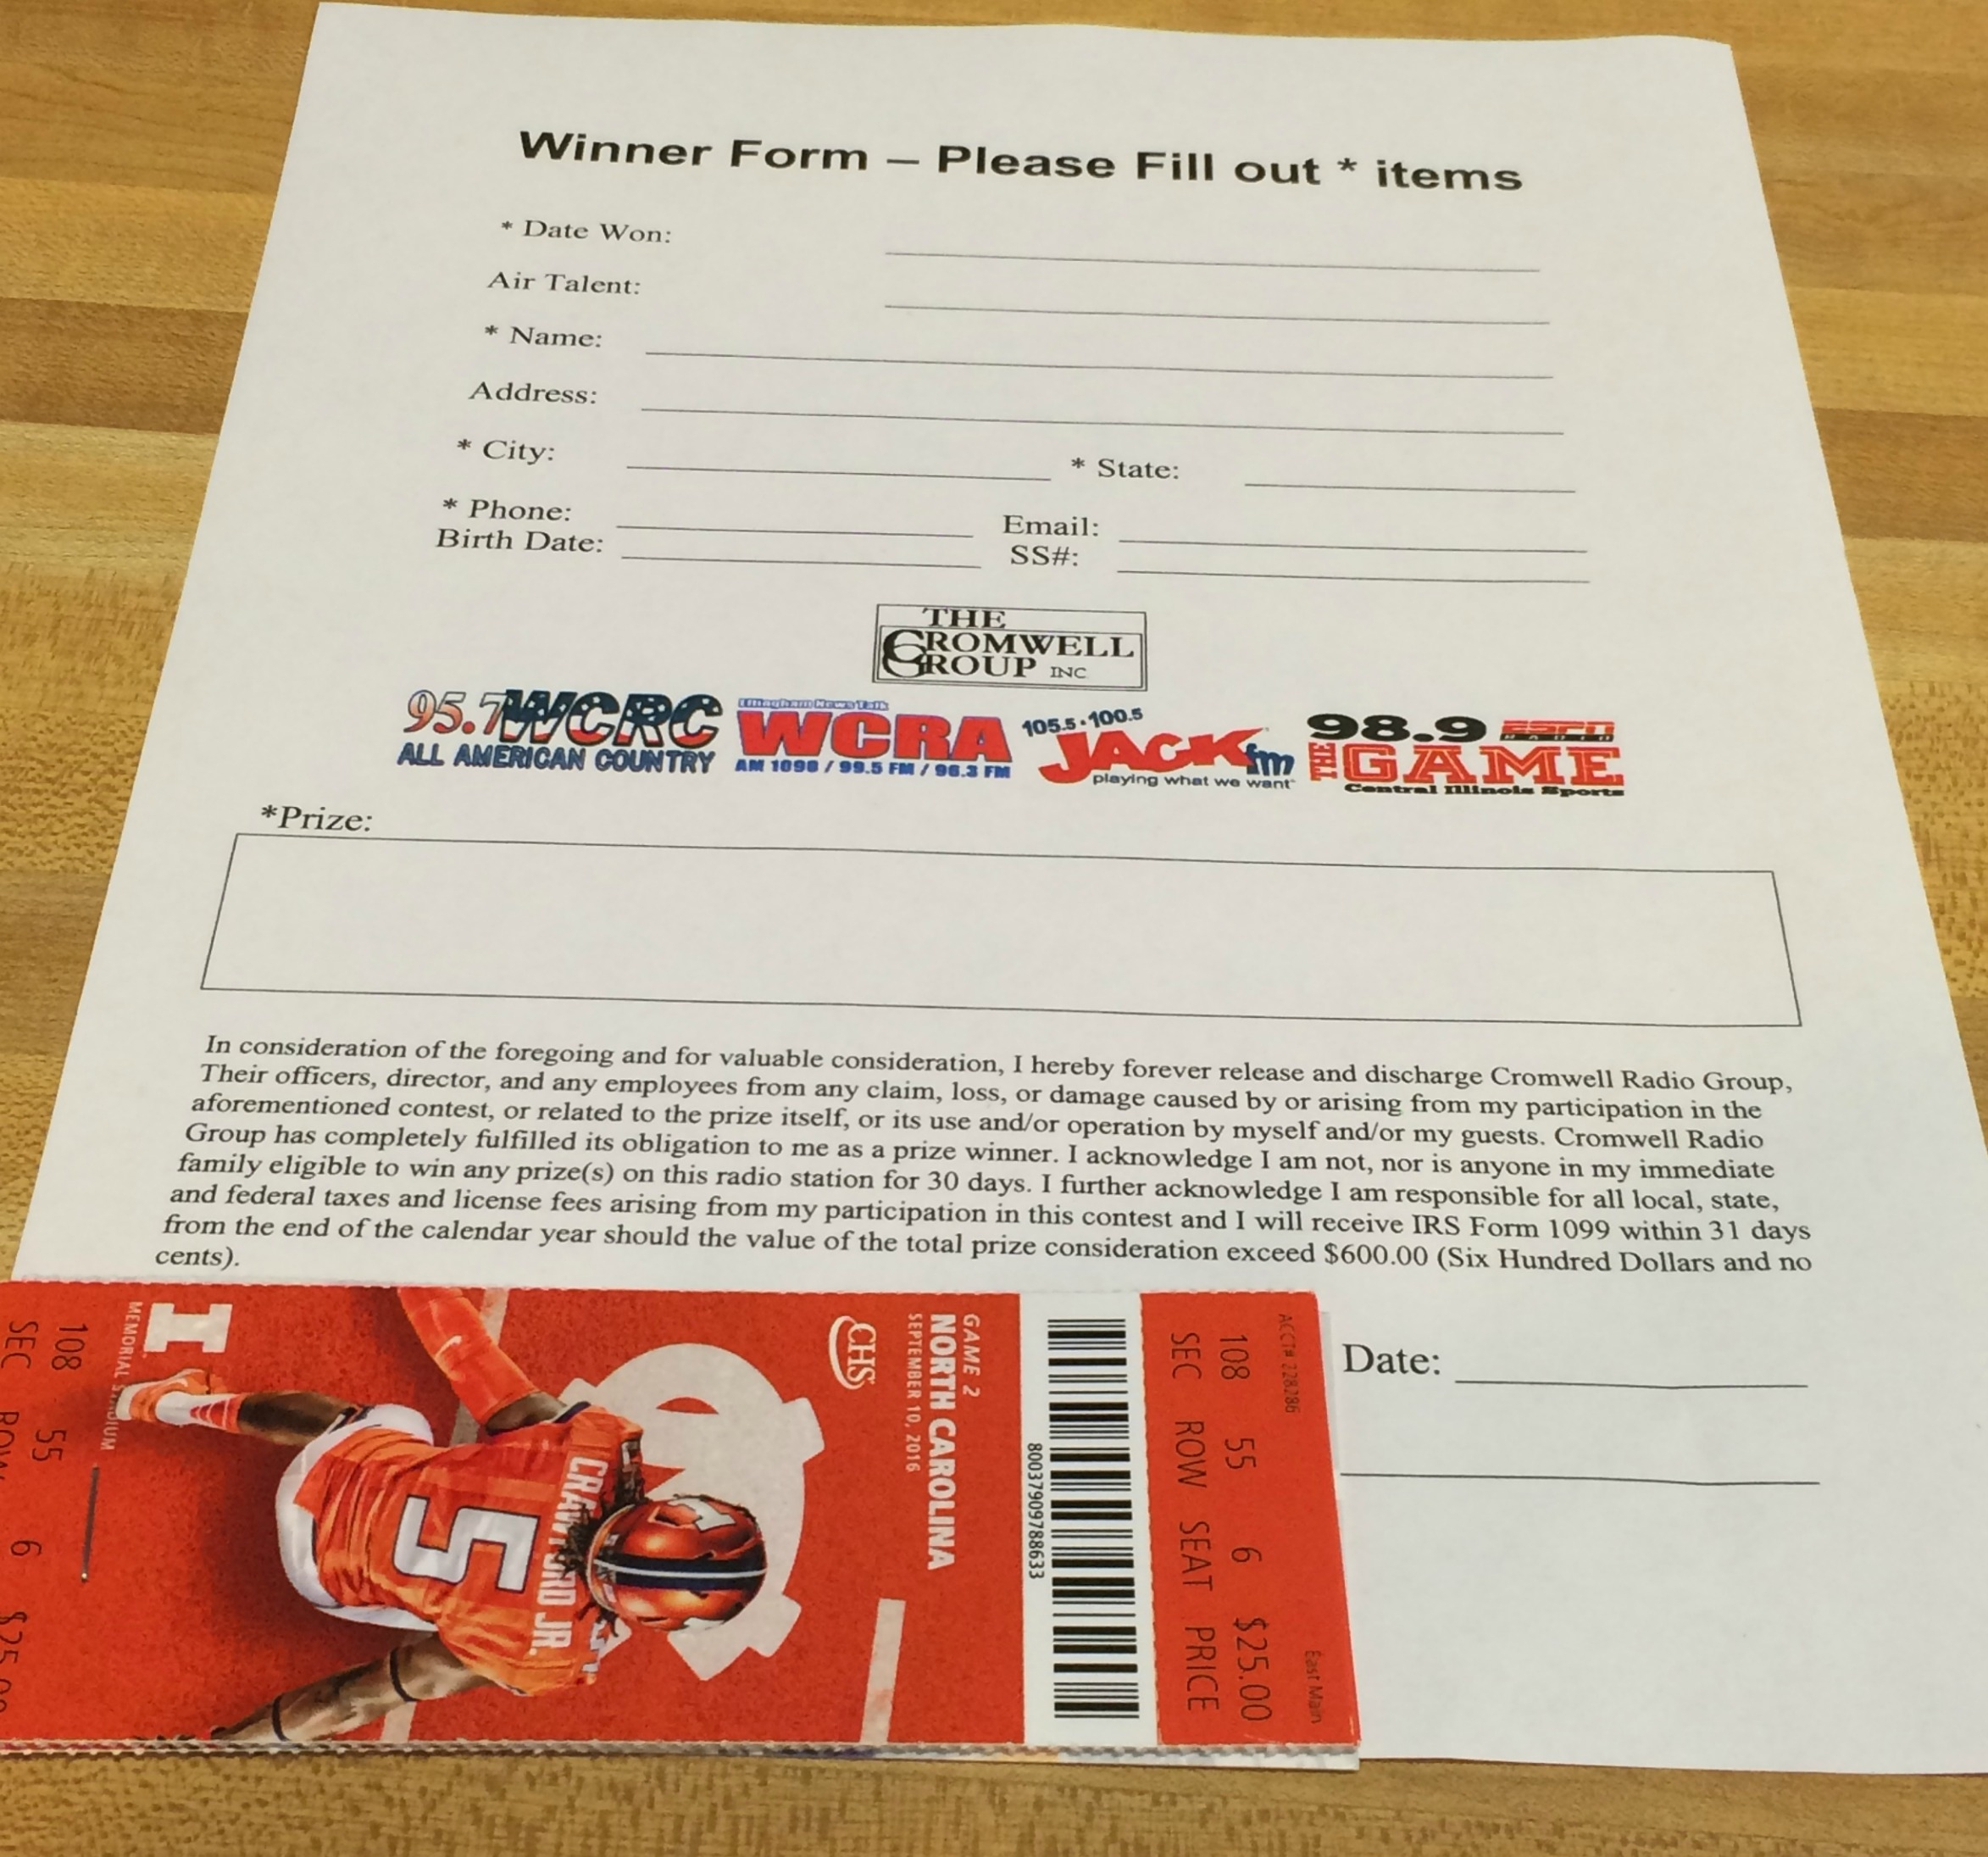 4 Pack of University of Illinois Tickets